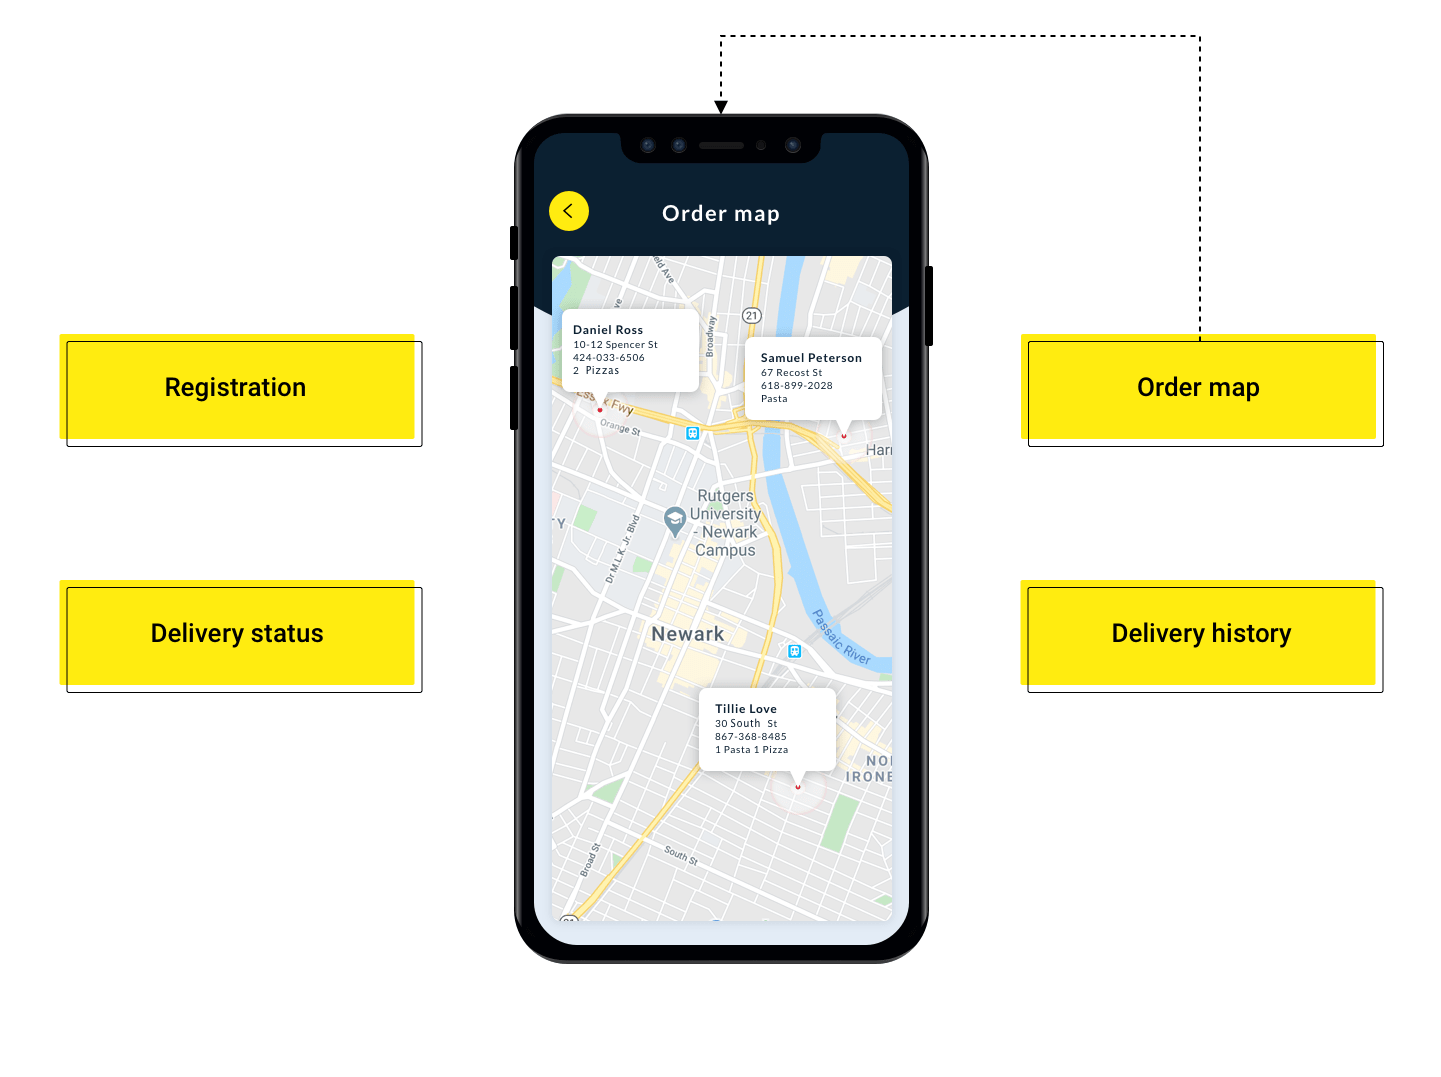 Courier Panel of the Food Delivery Application